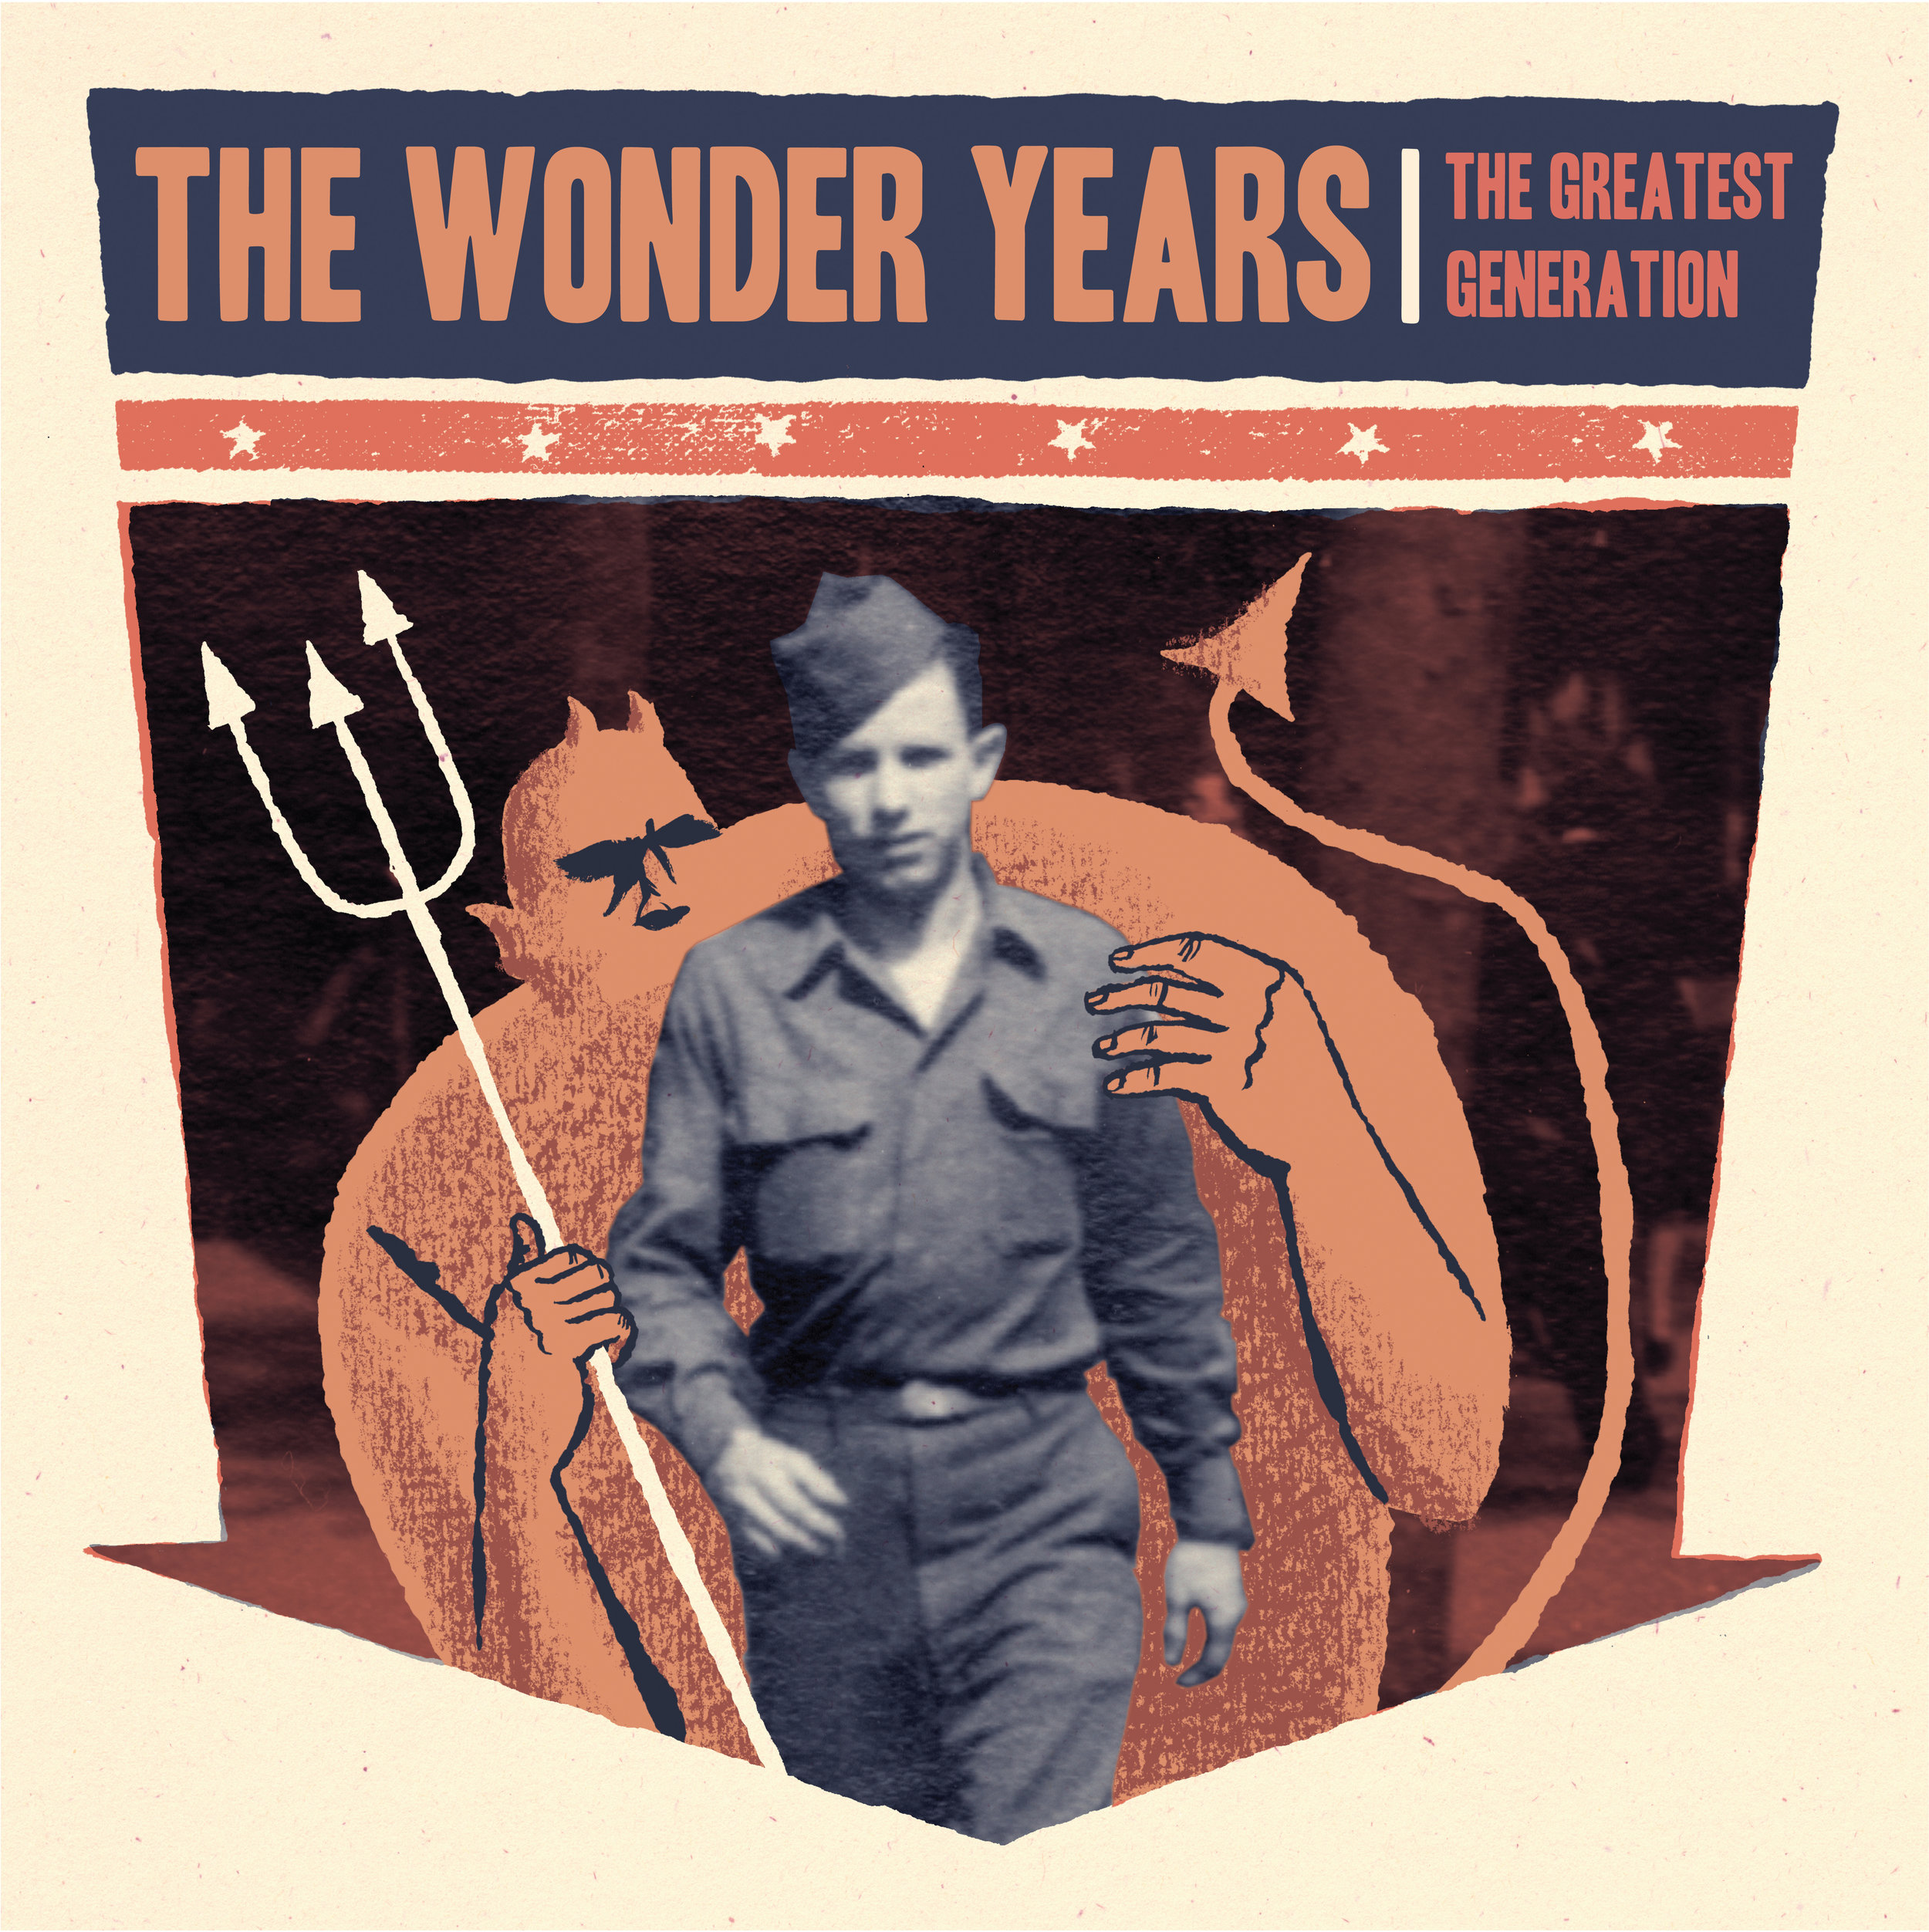 The Wonder Years - The Greatest Generation